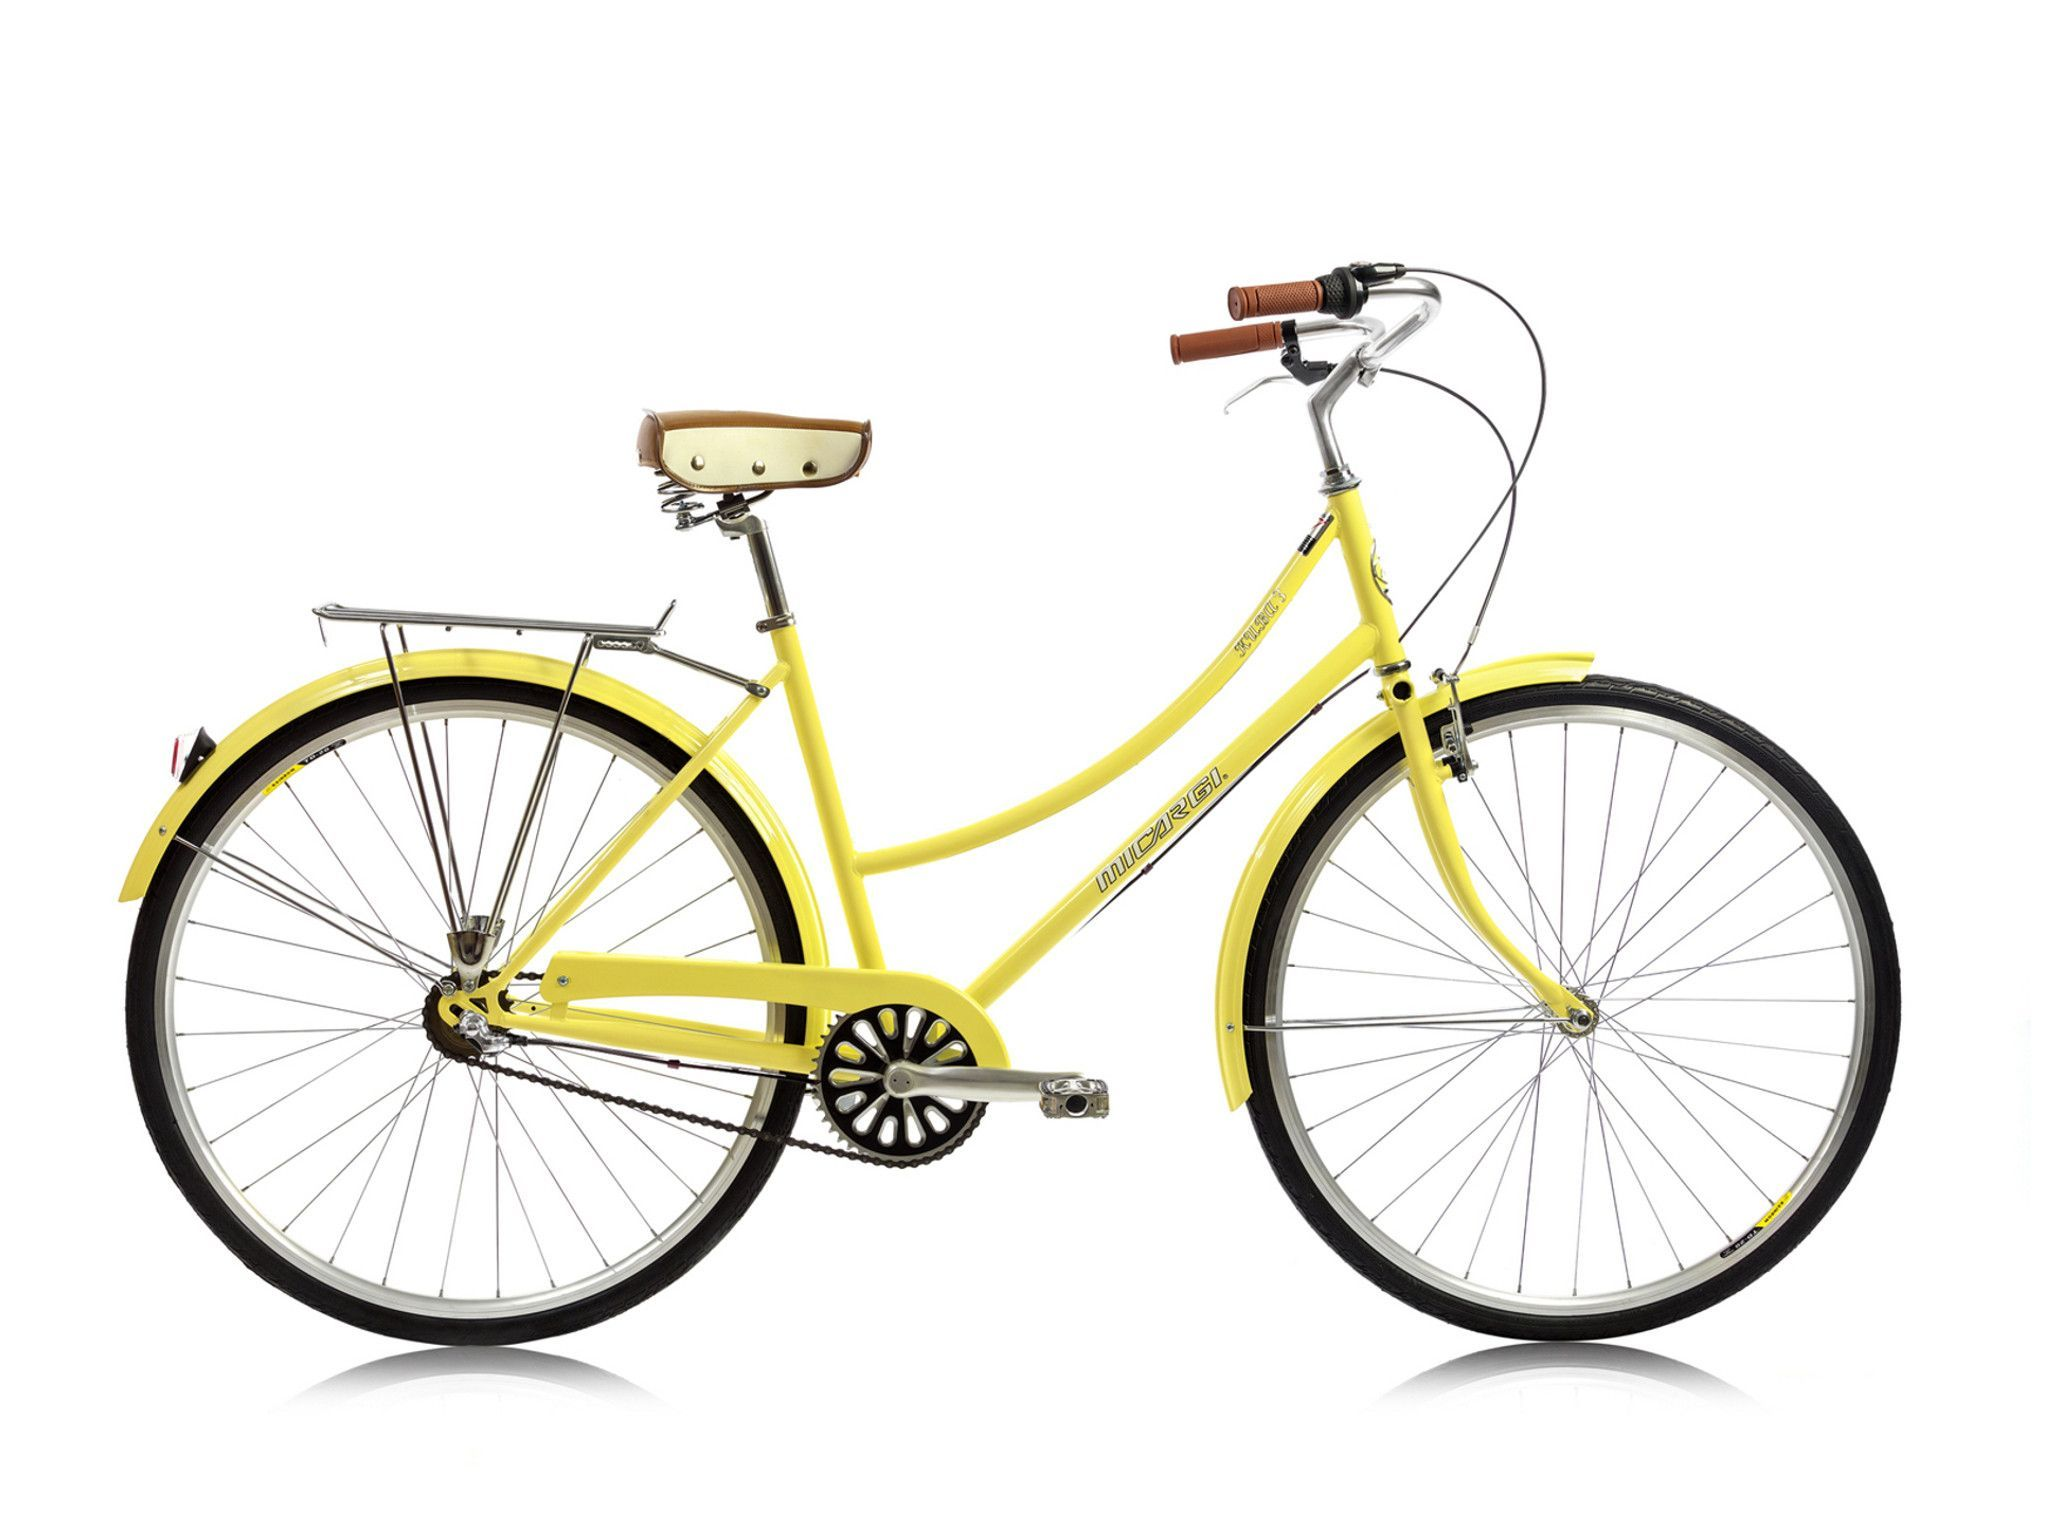 Micargi Kuba Nx3 Shimano 3 Speed City Commuter Bike Yellow